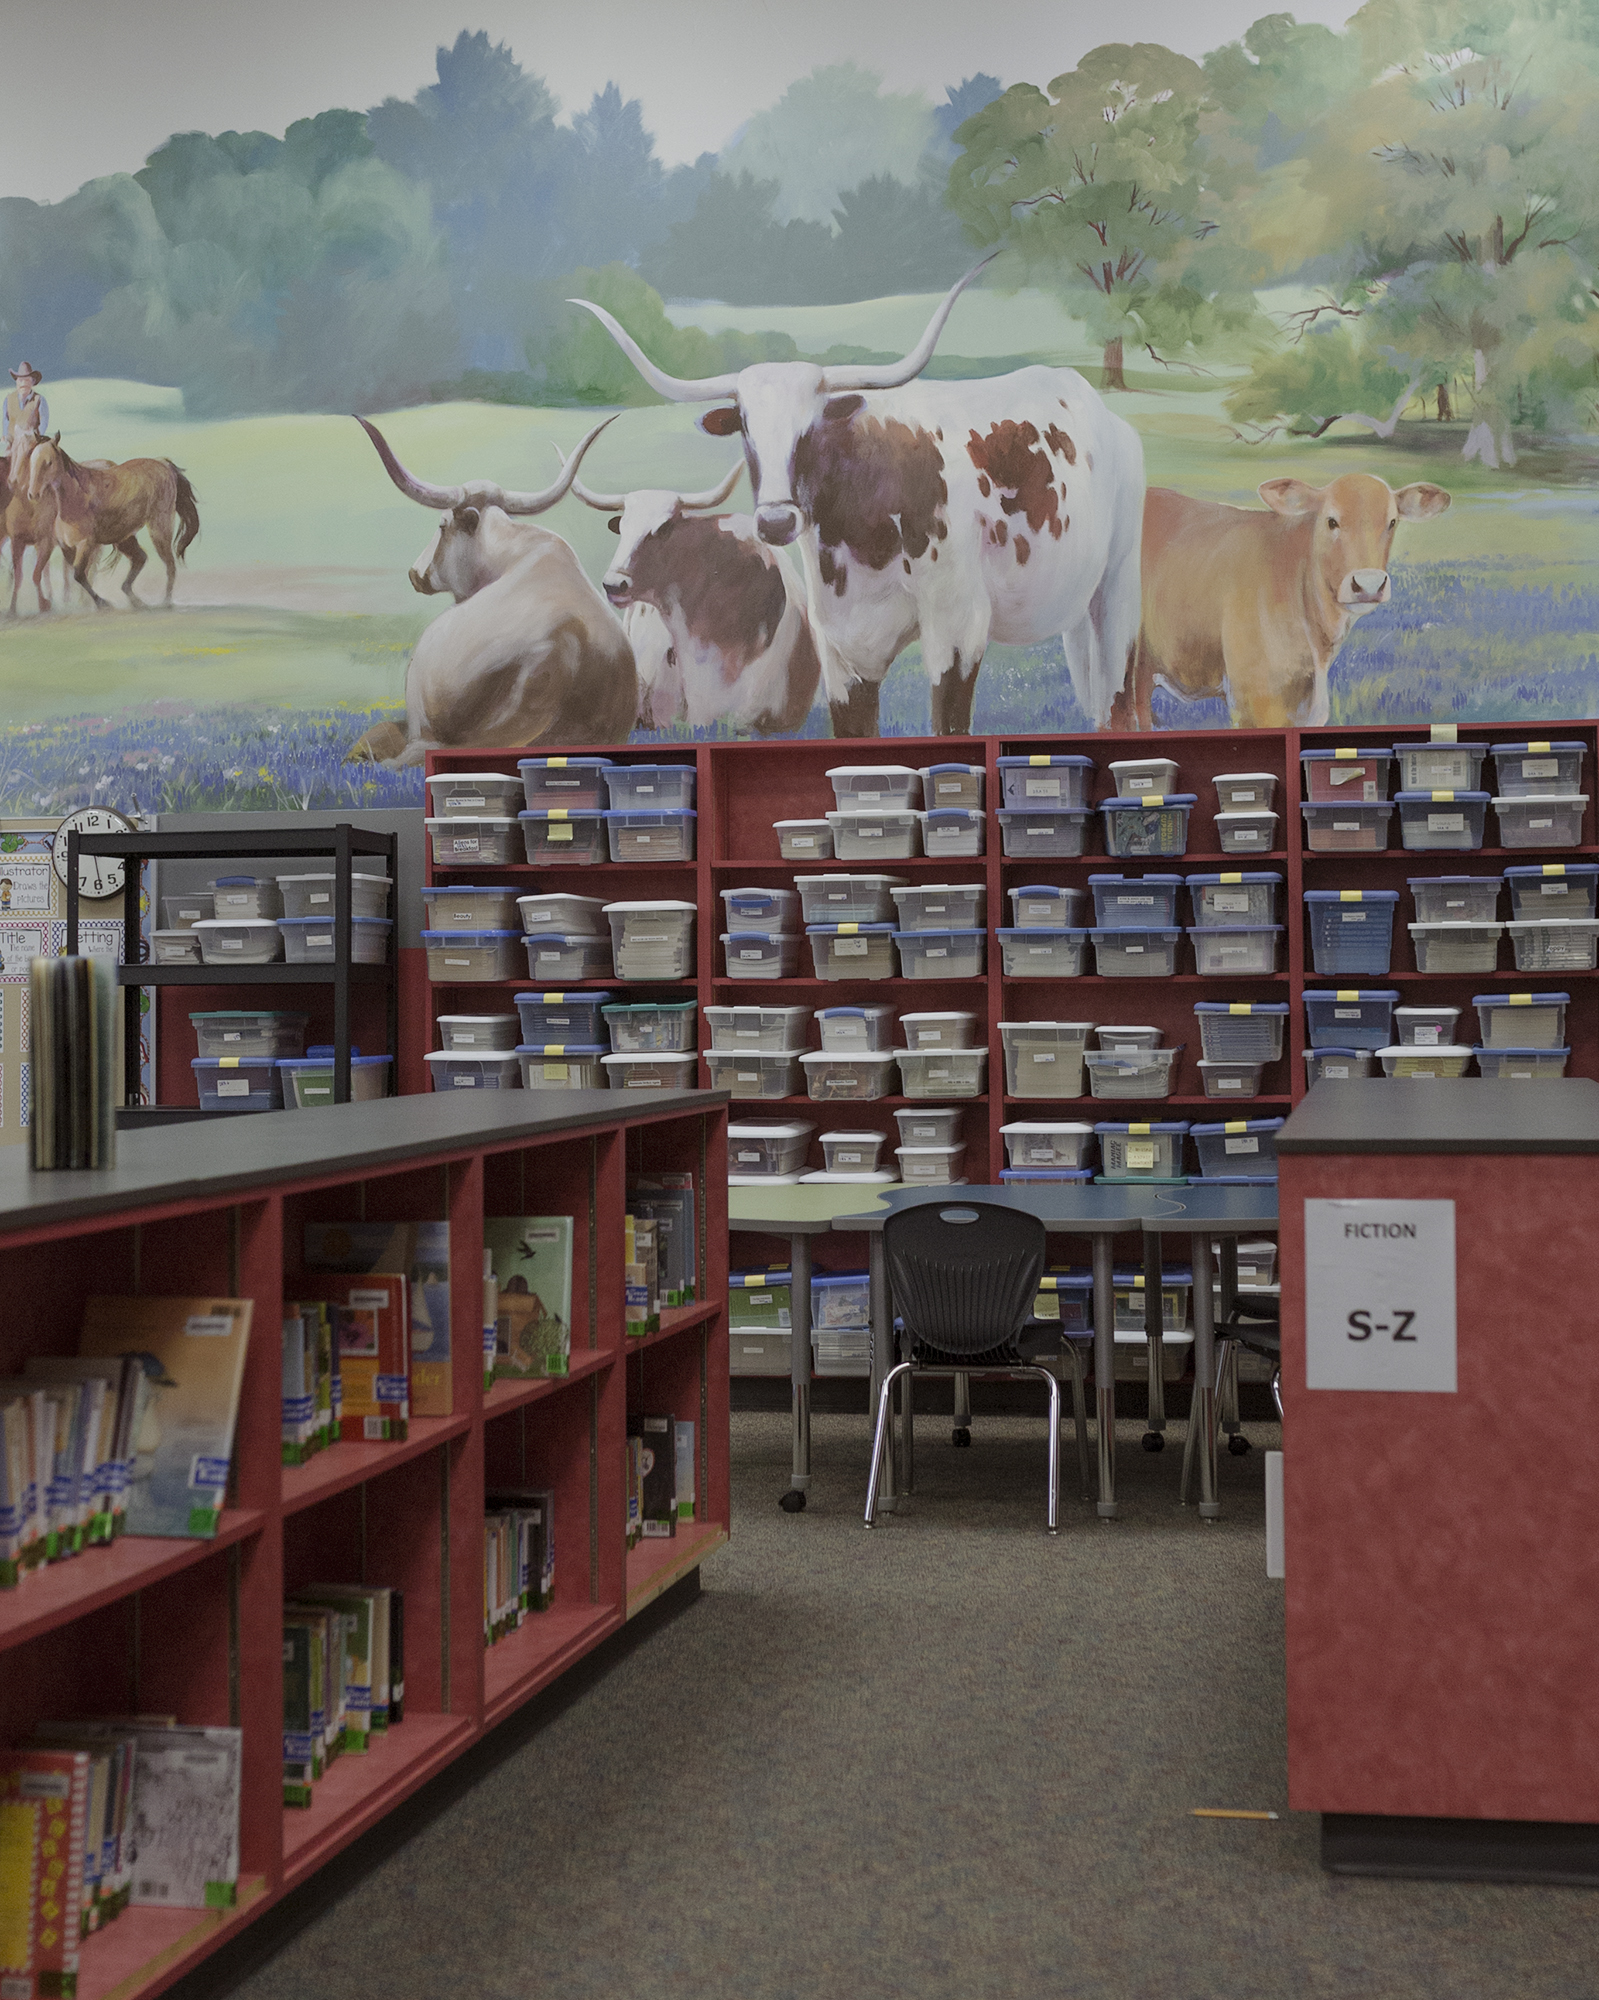 A mural hangs above the bookshelves of my childhood elementary school, depicting the landscape of what Fulshear once was.